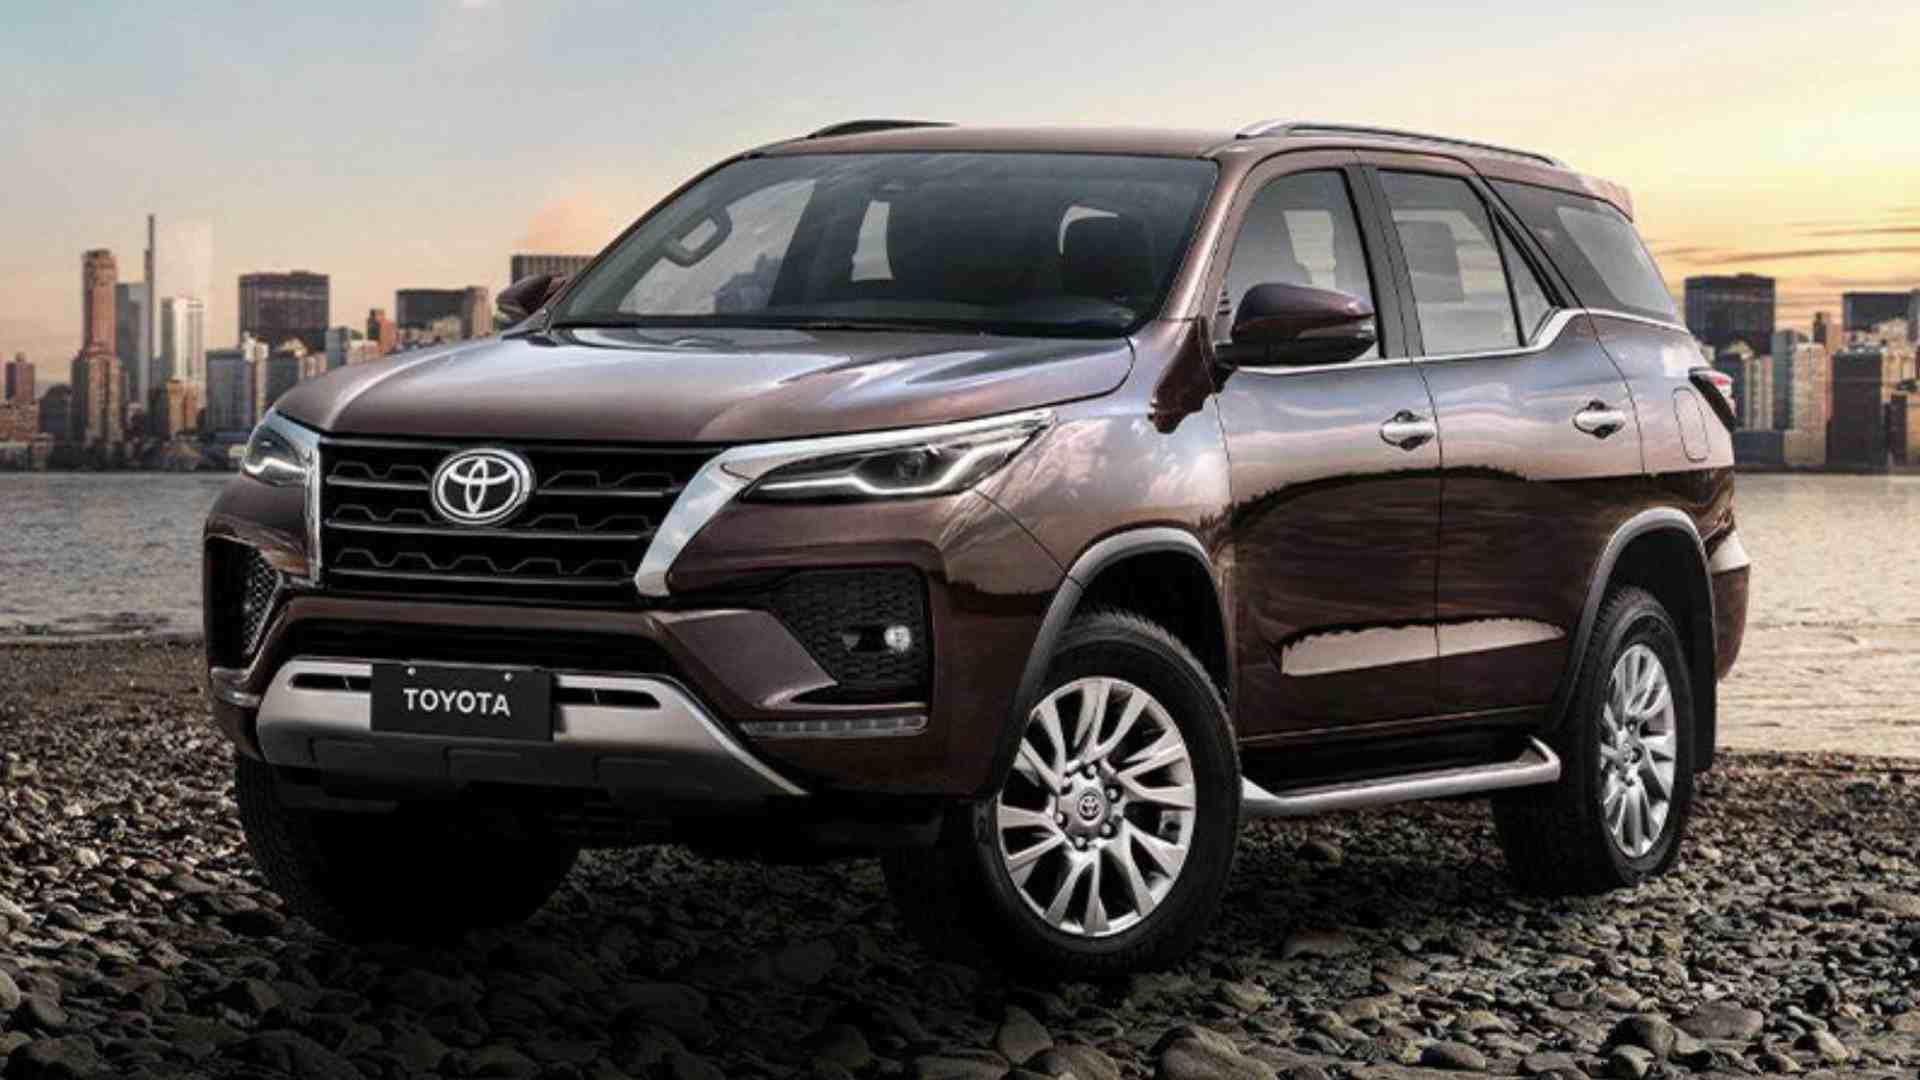 Toyota Brazil will accept corn or soybean in exchange for its SUVs. Image: Toyota